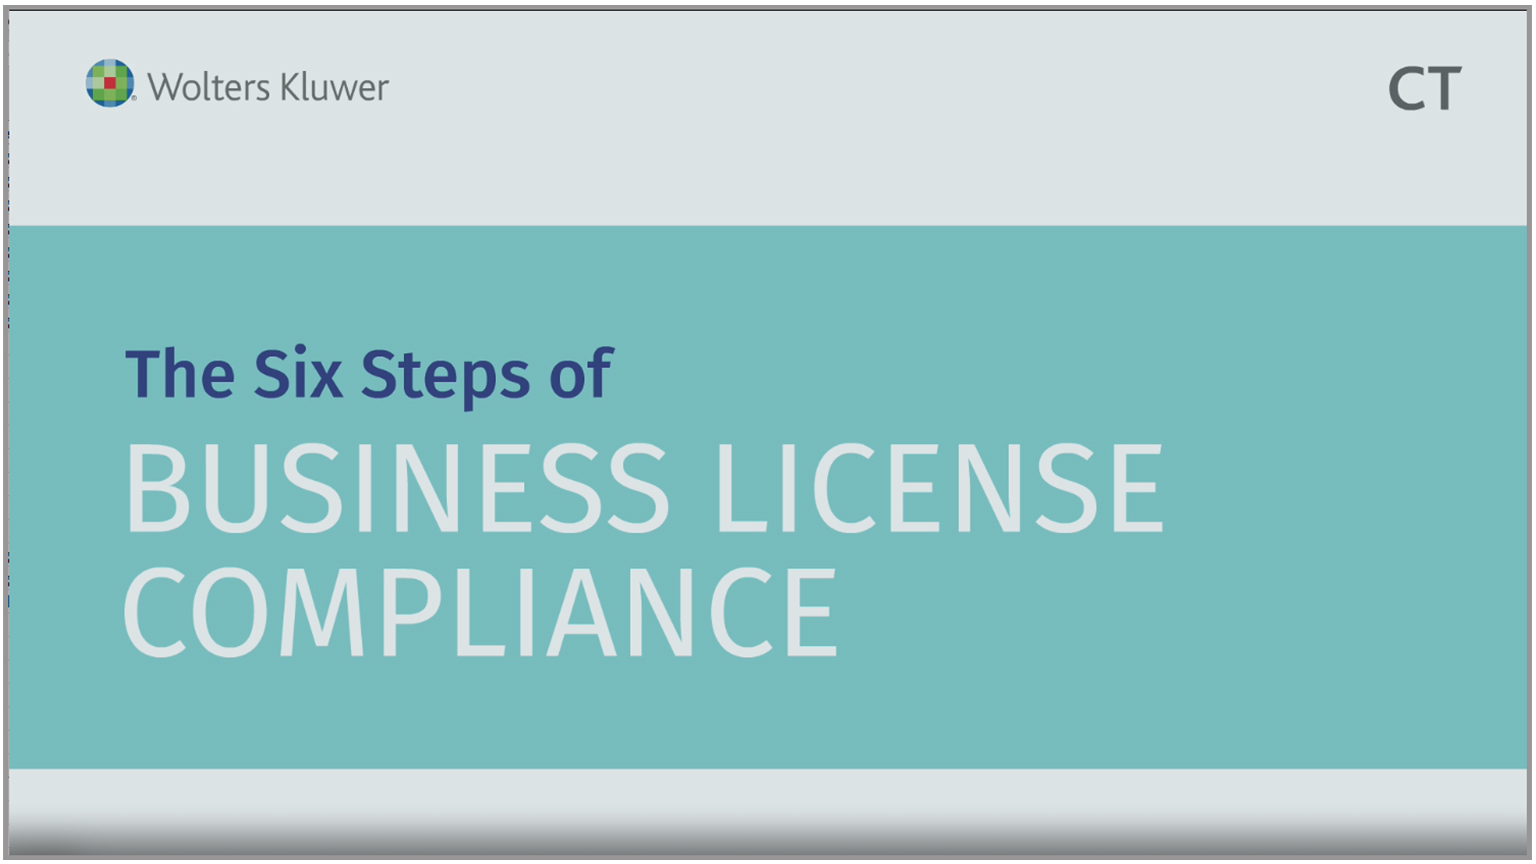 The Six Steps of Business License Compliance